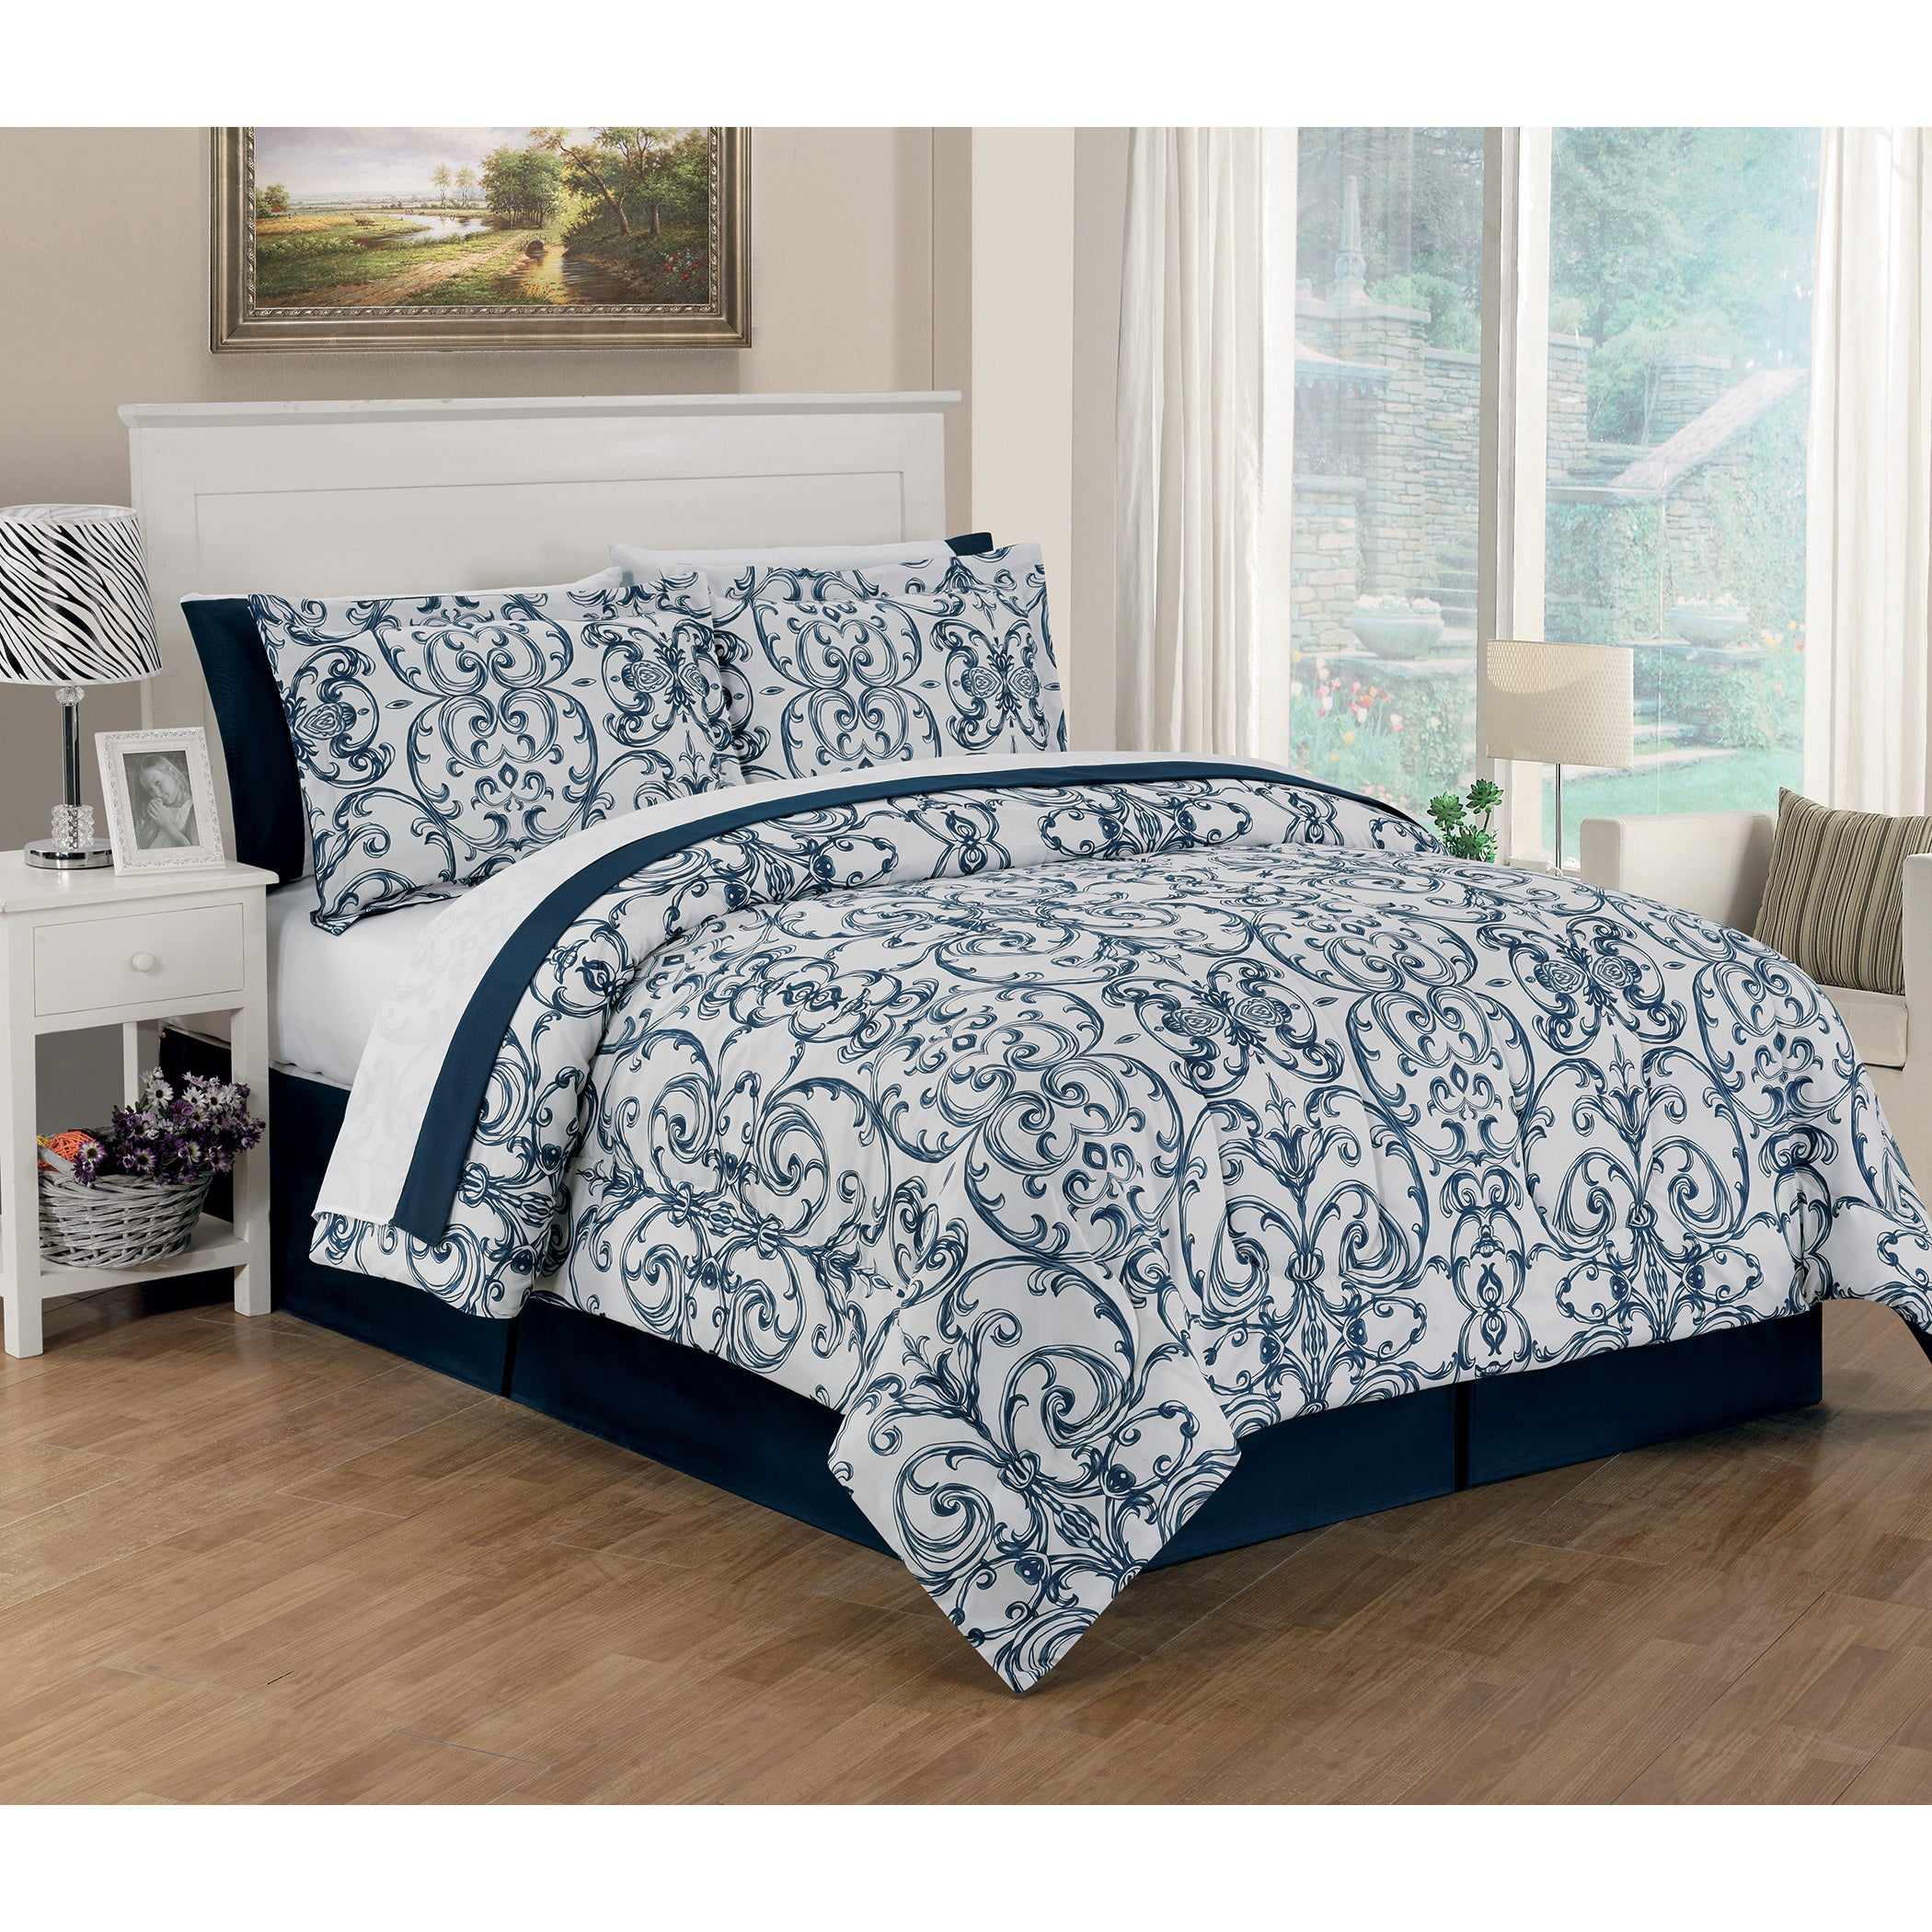 Blue And White King Size 6 Piece Comforter Set Overstock 11003577